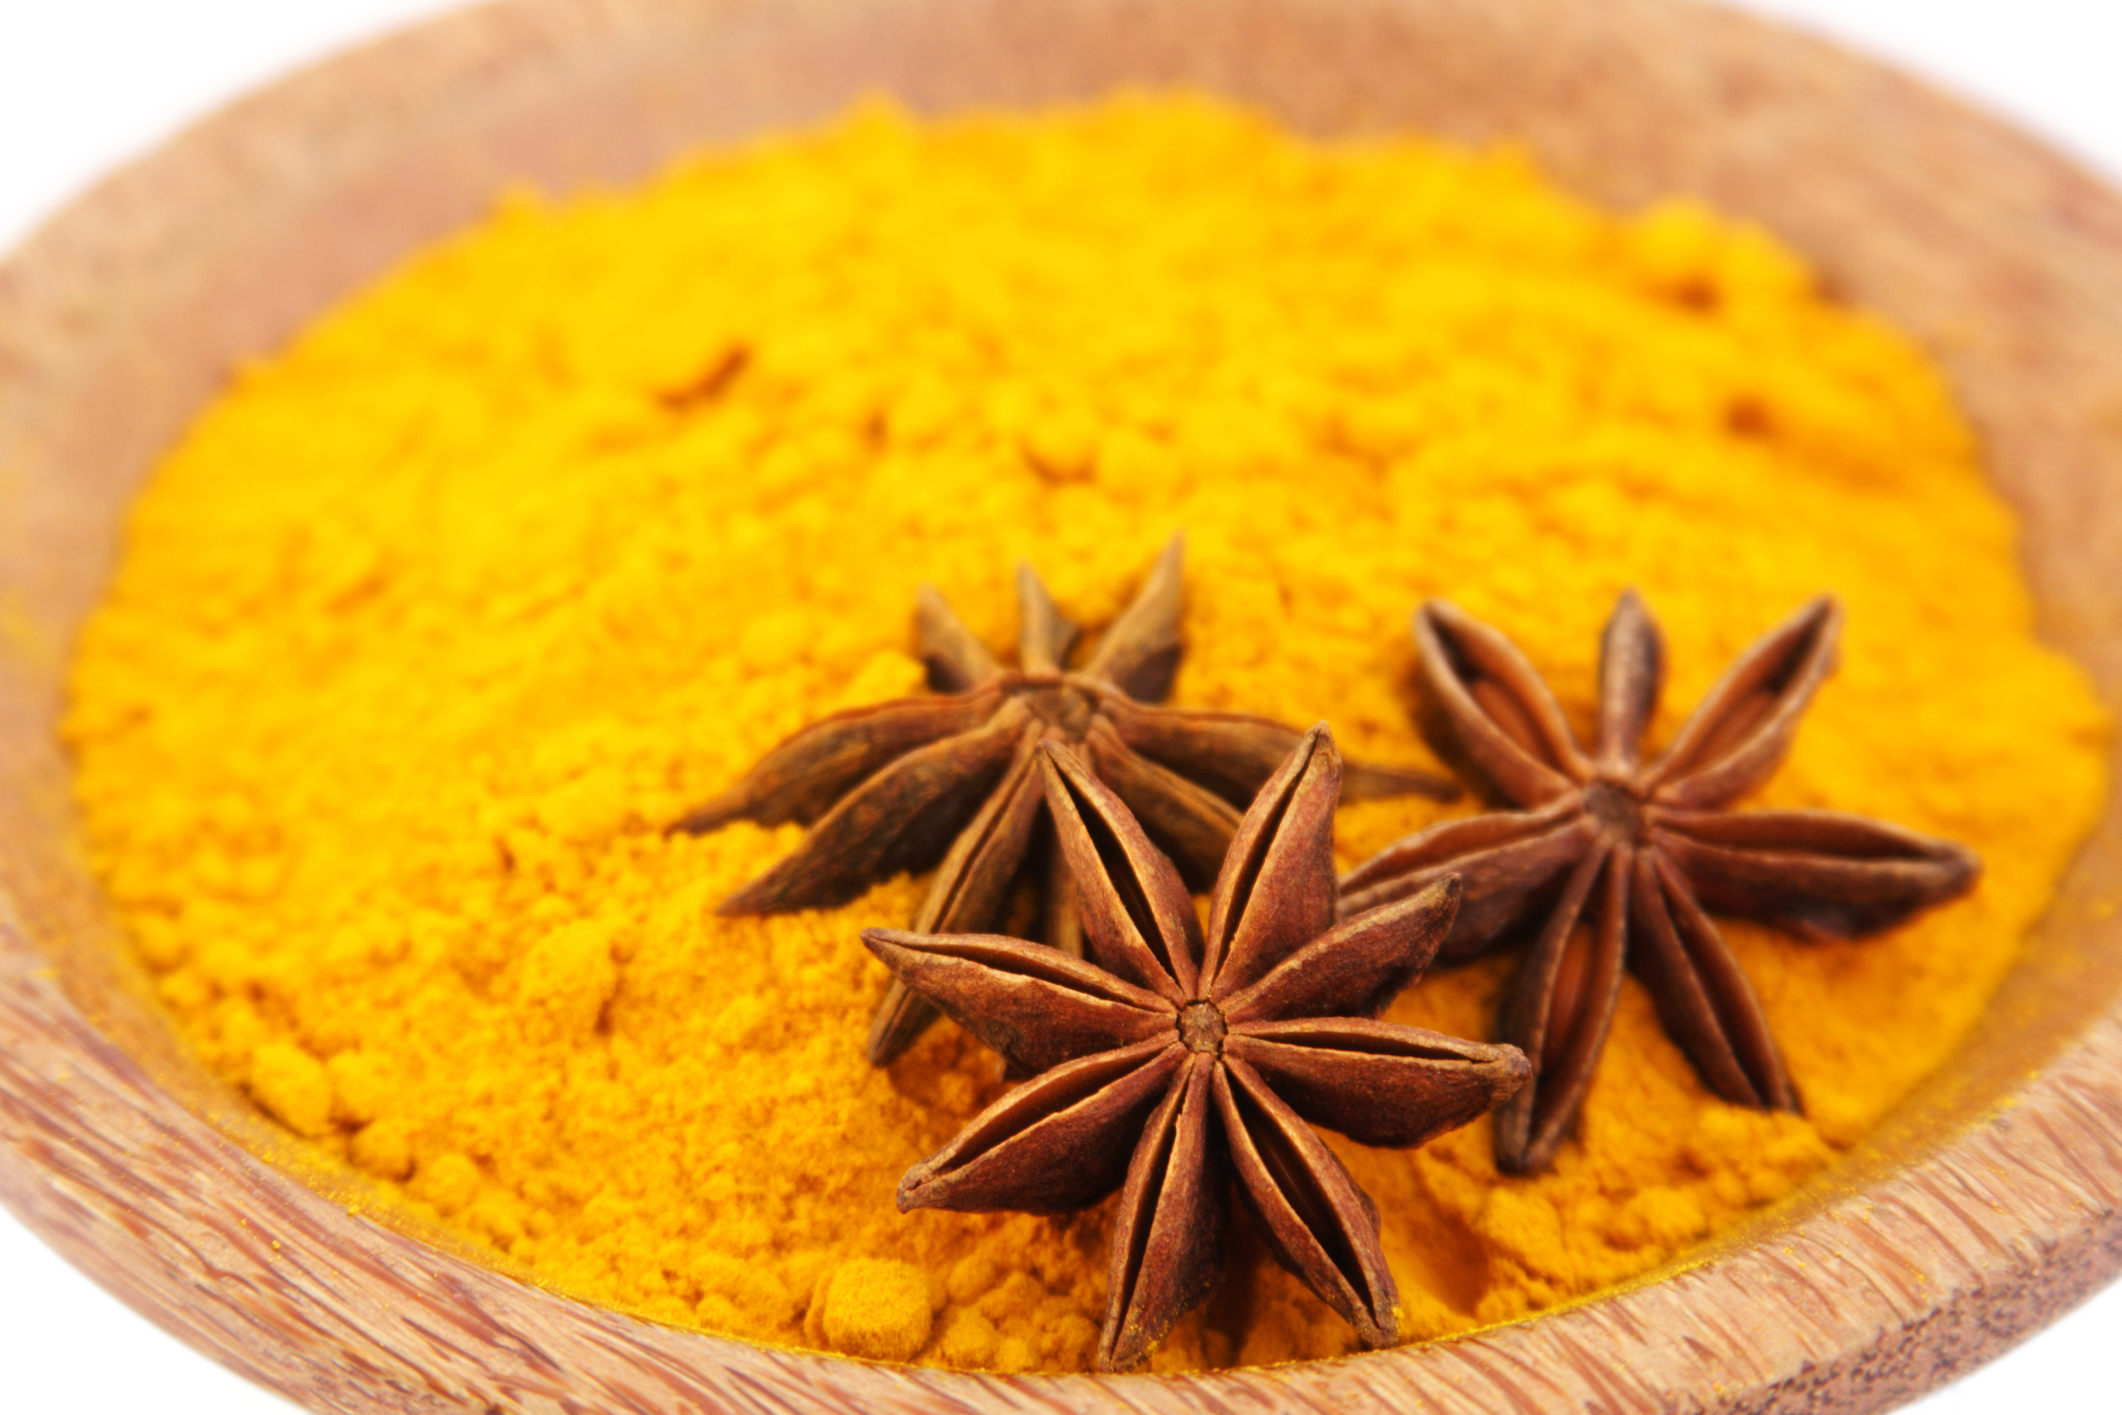 What Is the Meaning of Turmeric in Hinduism?